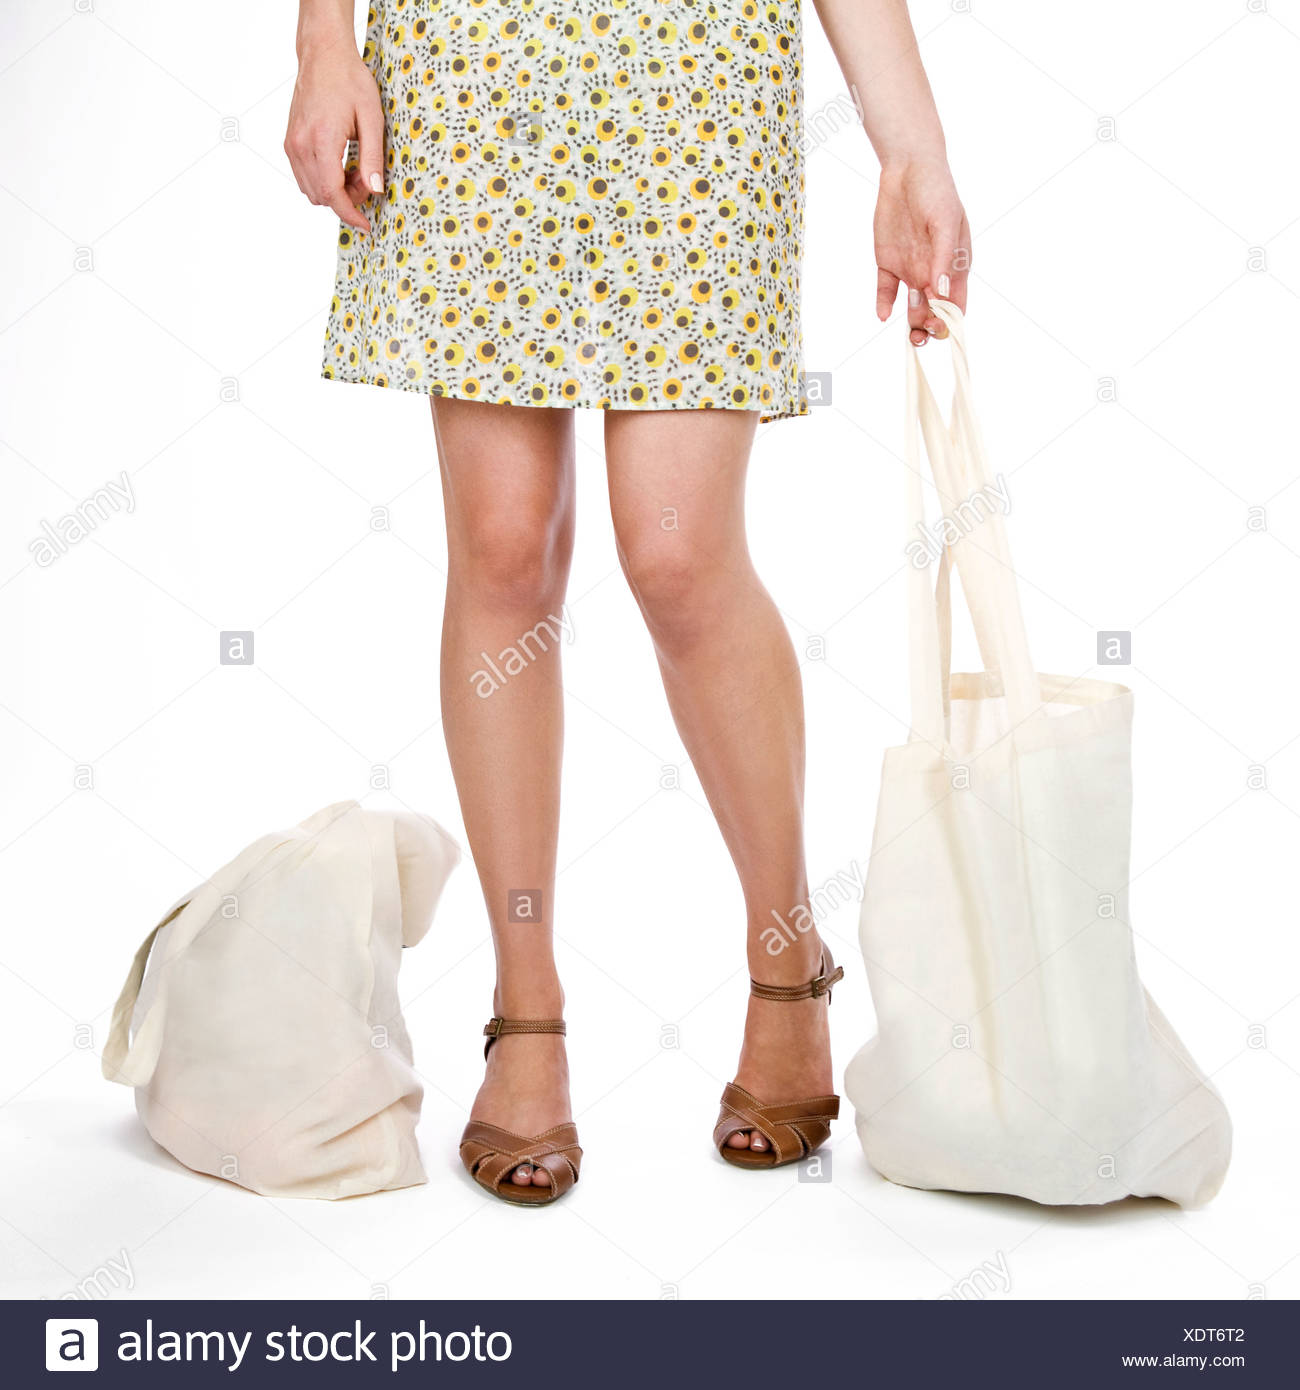 A Young Woman With Shopping Bags - Stock Image